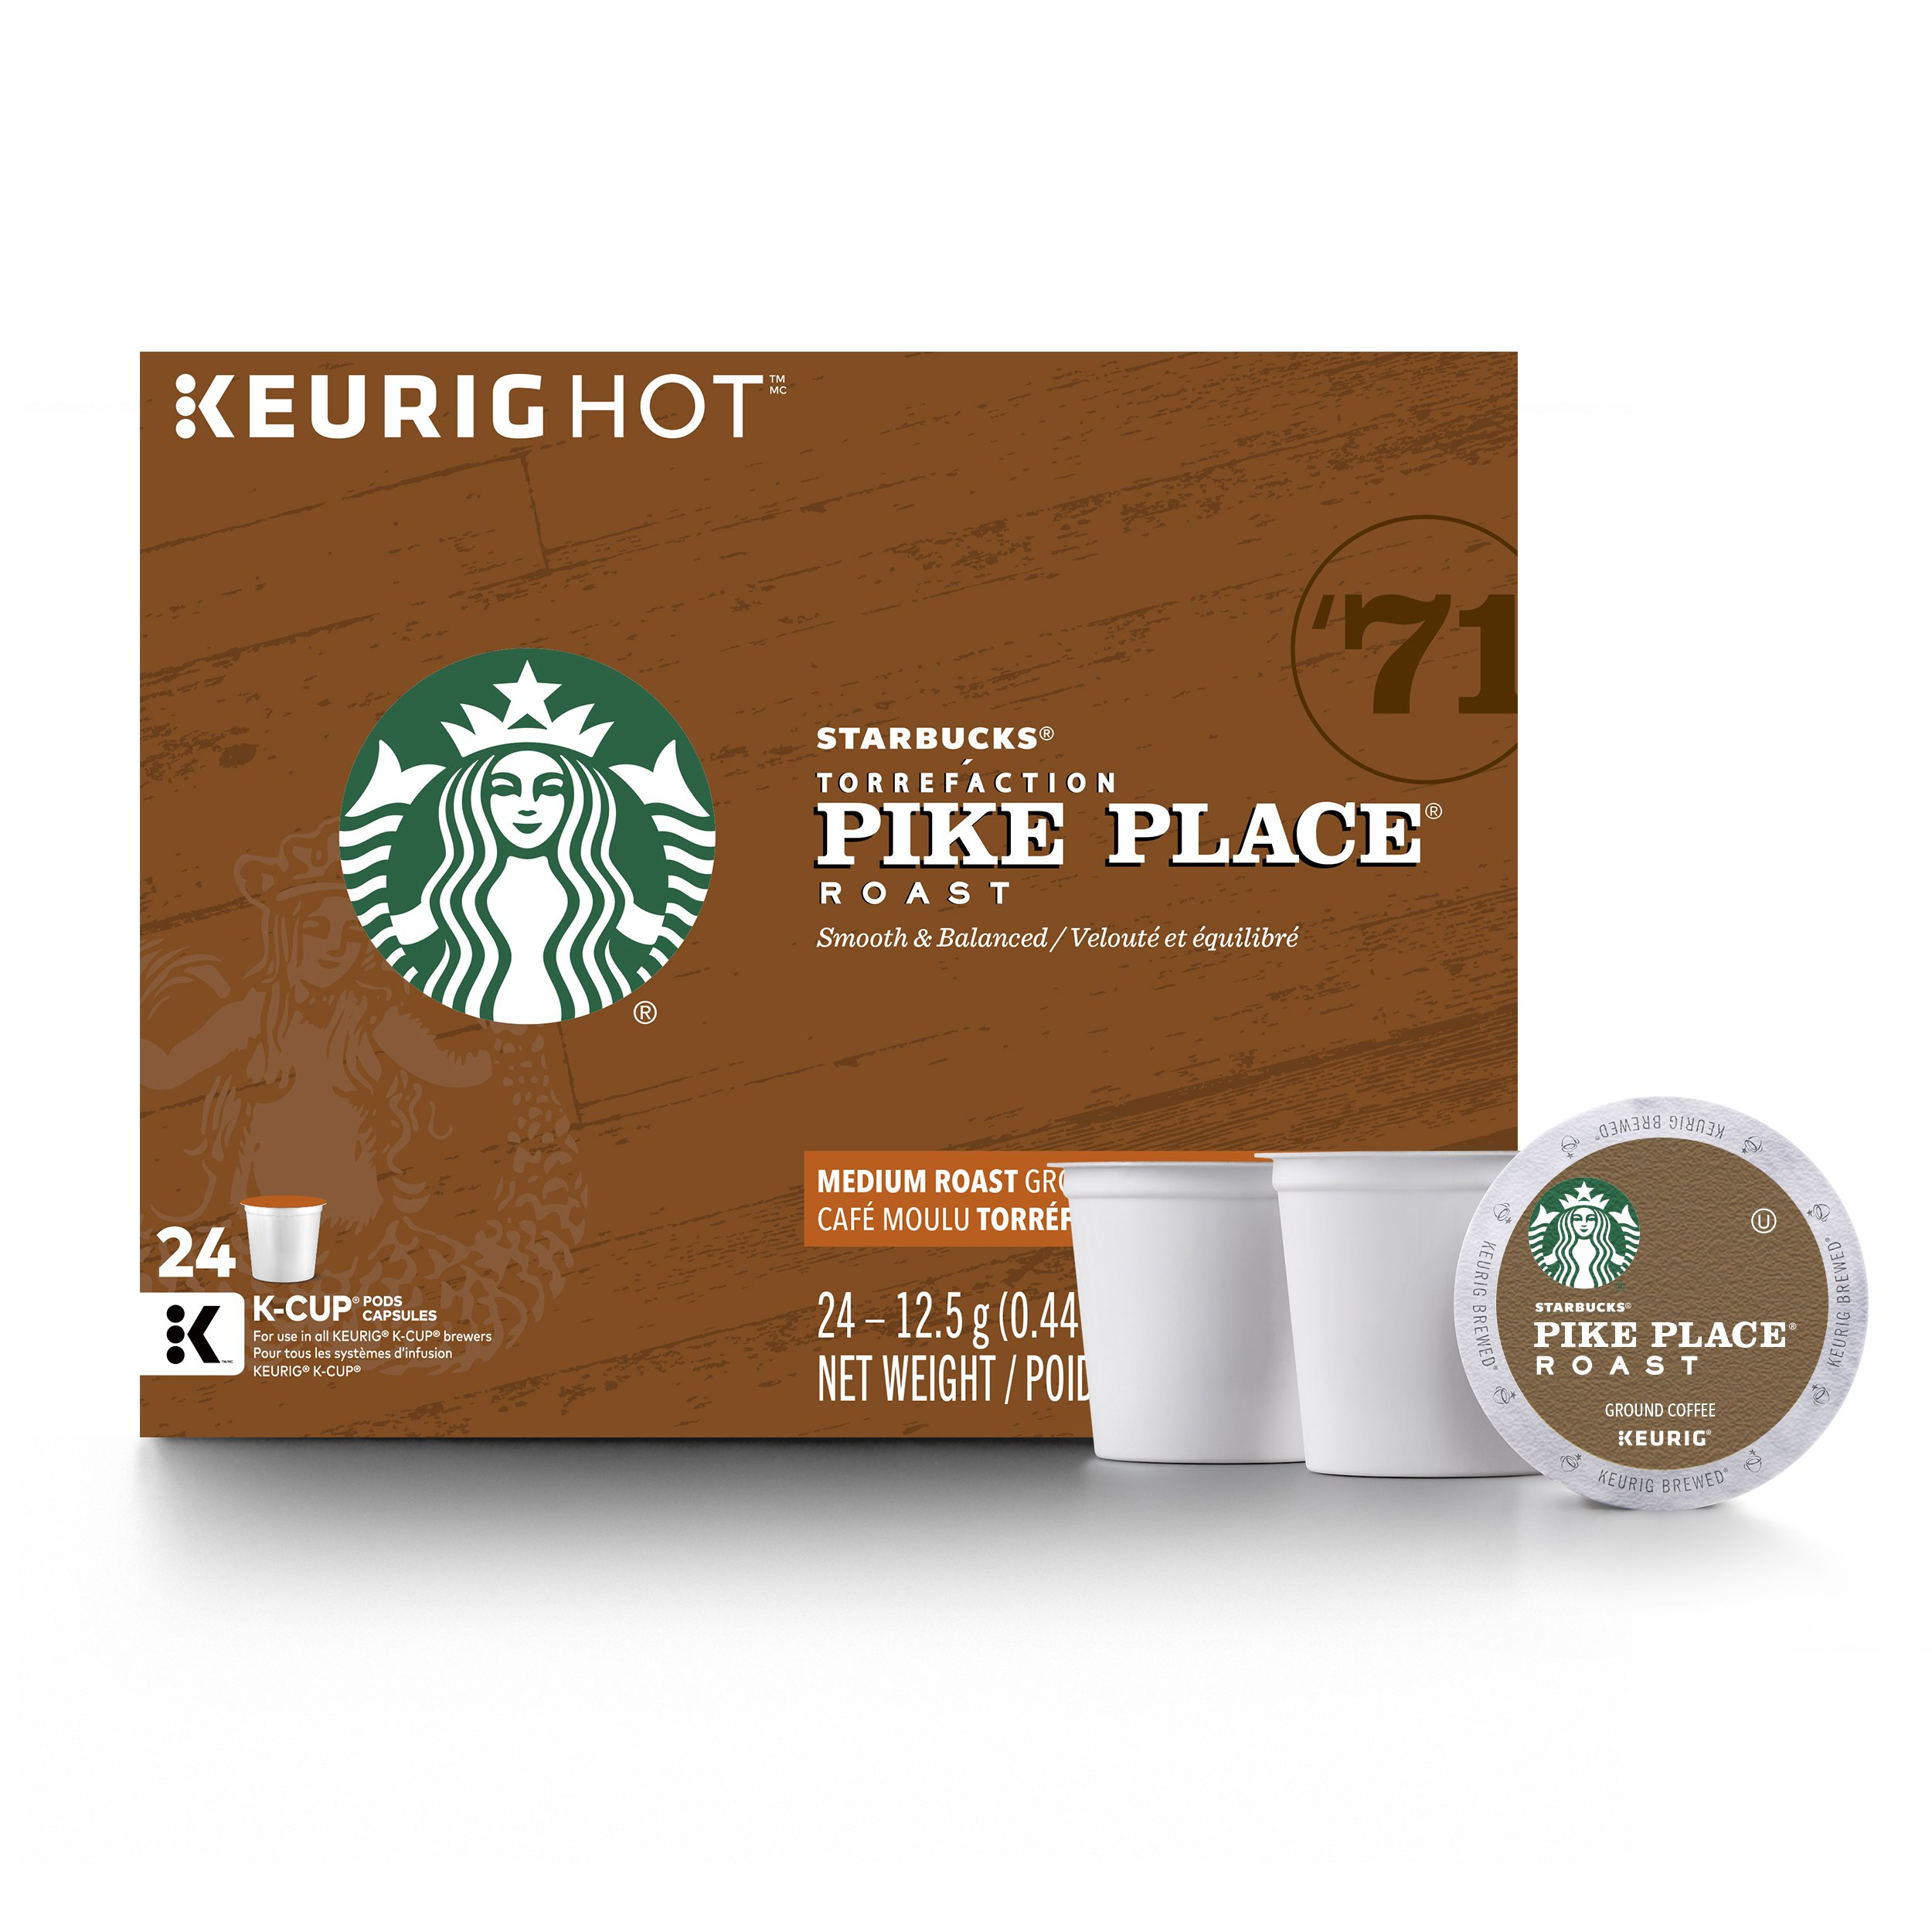 Starbucks Pike Place Roast Medium Roast Single Cup Coffee for Keurig Brewers, 4 boxes of 24 (96 Count K-Cup pods) by Starbucks